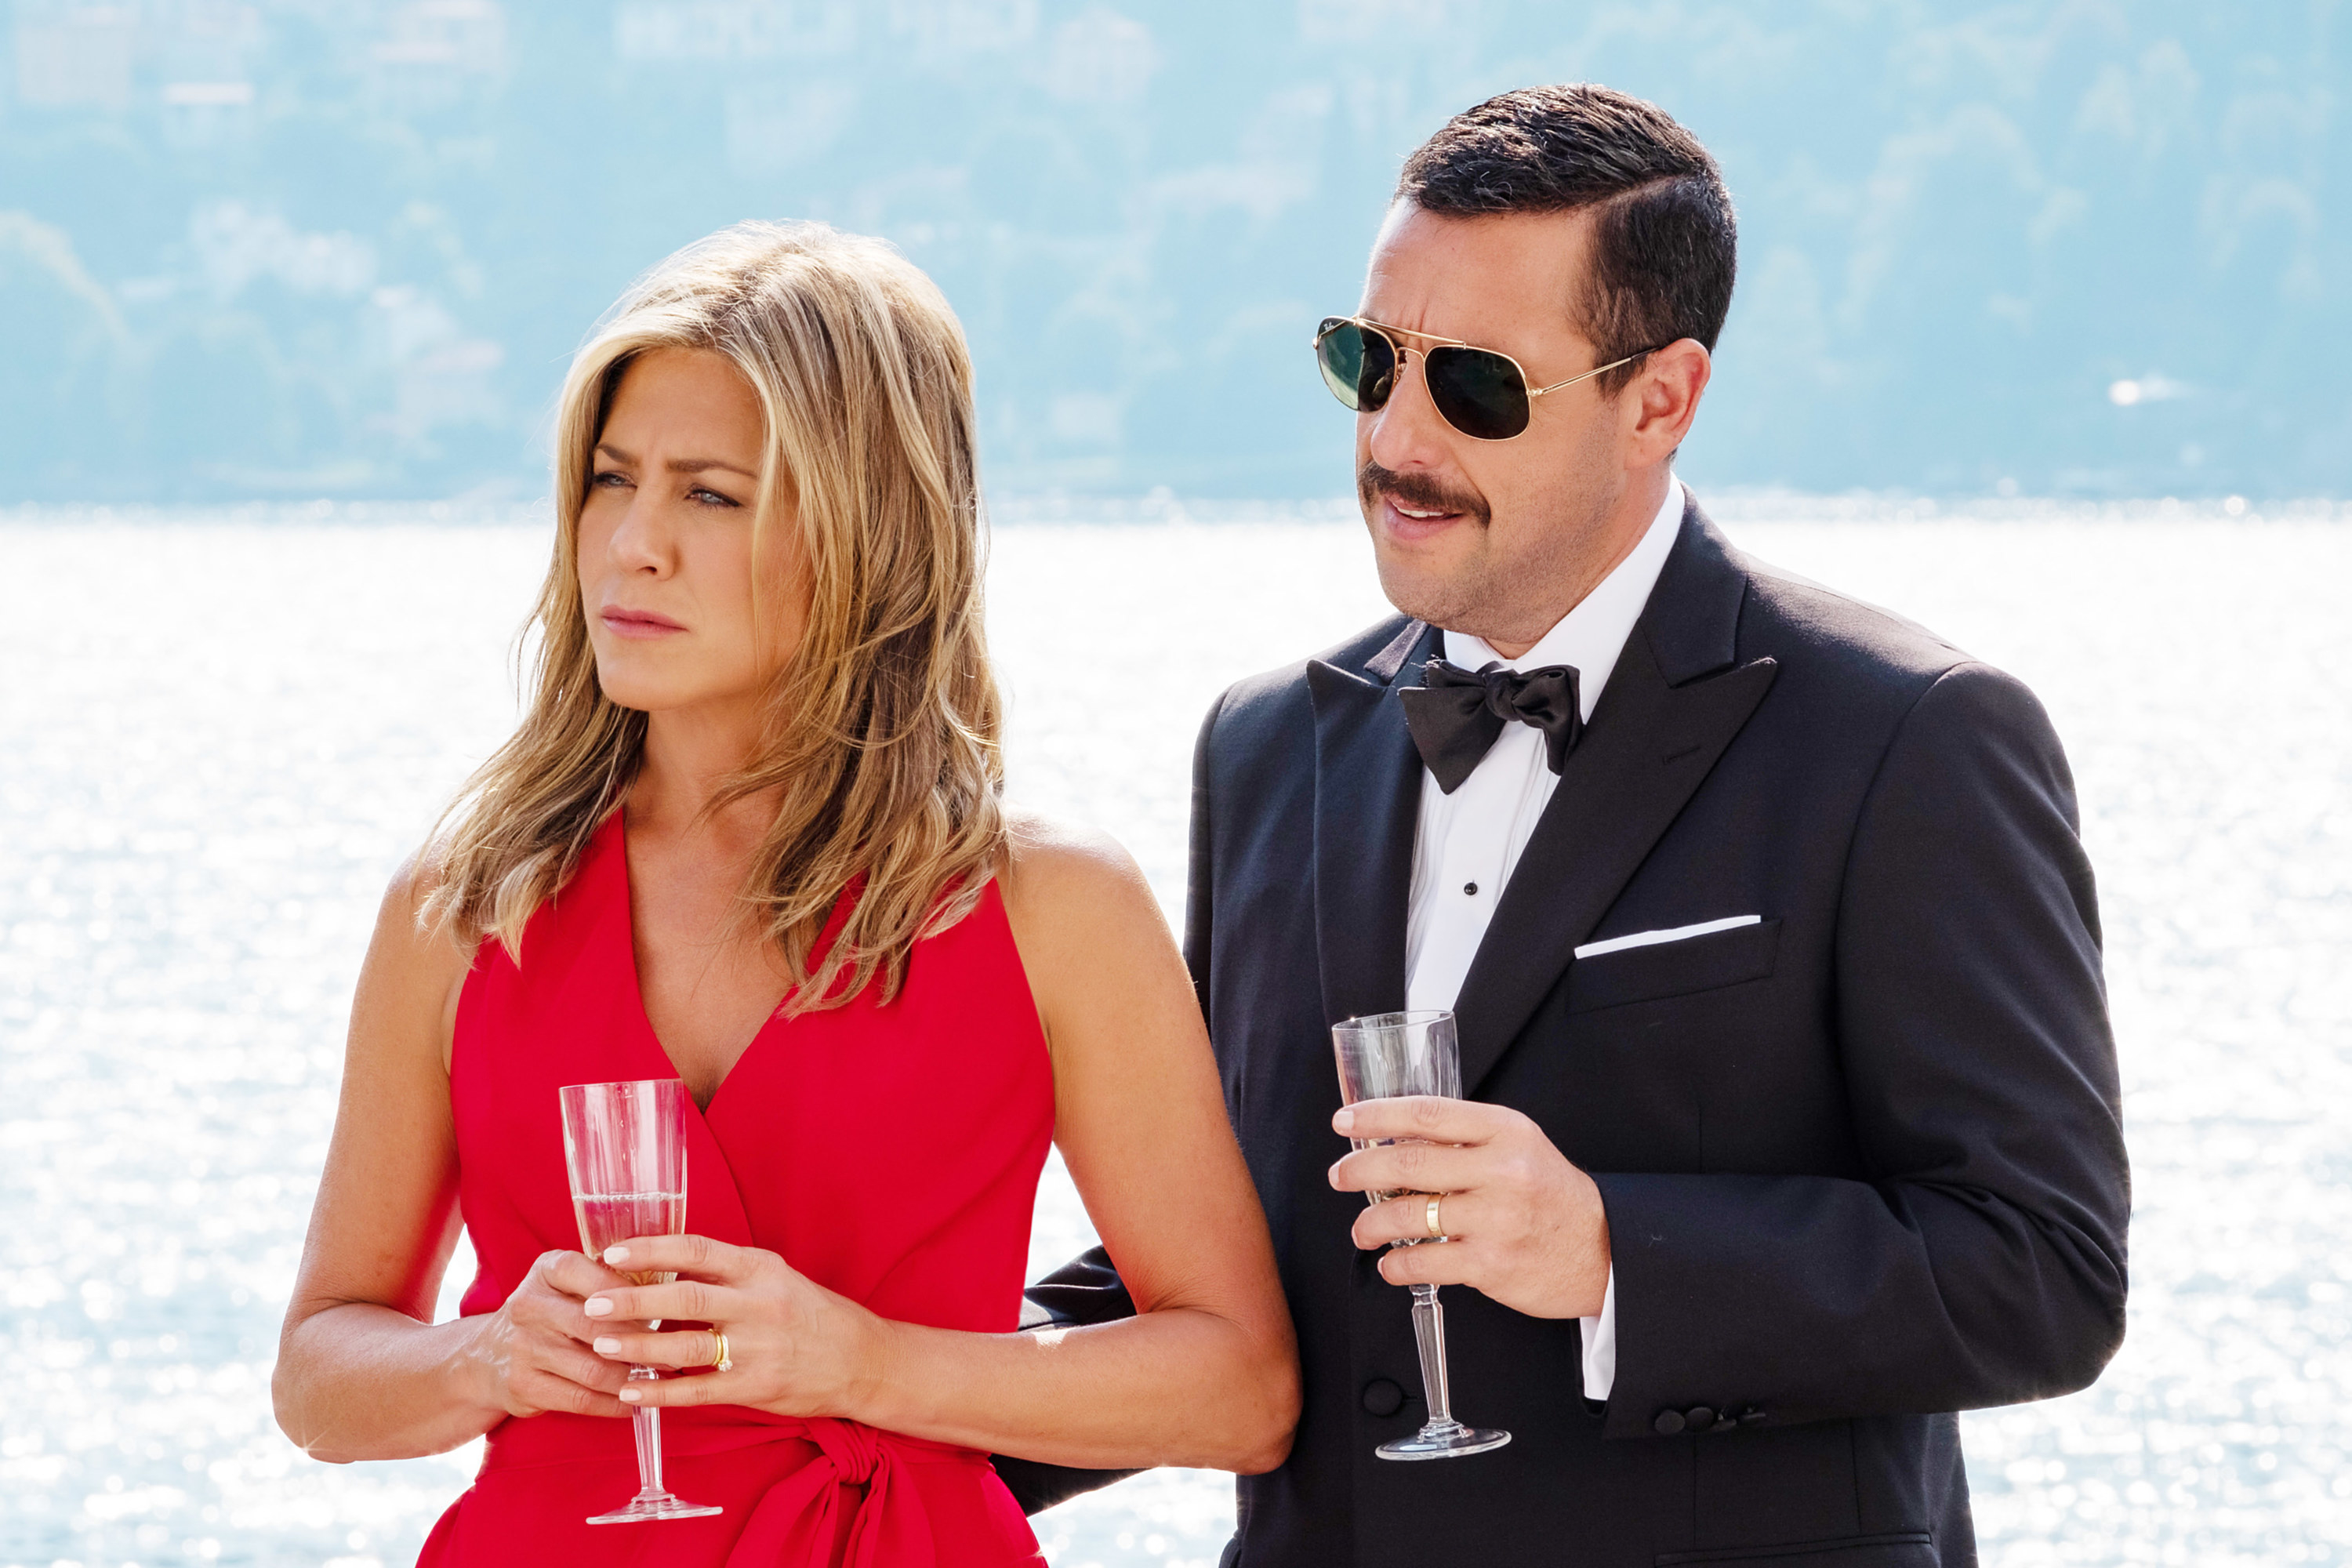 jennifer anniston and adam sandler holding a drink while looking in the same direction in concentration